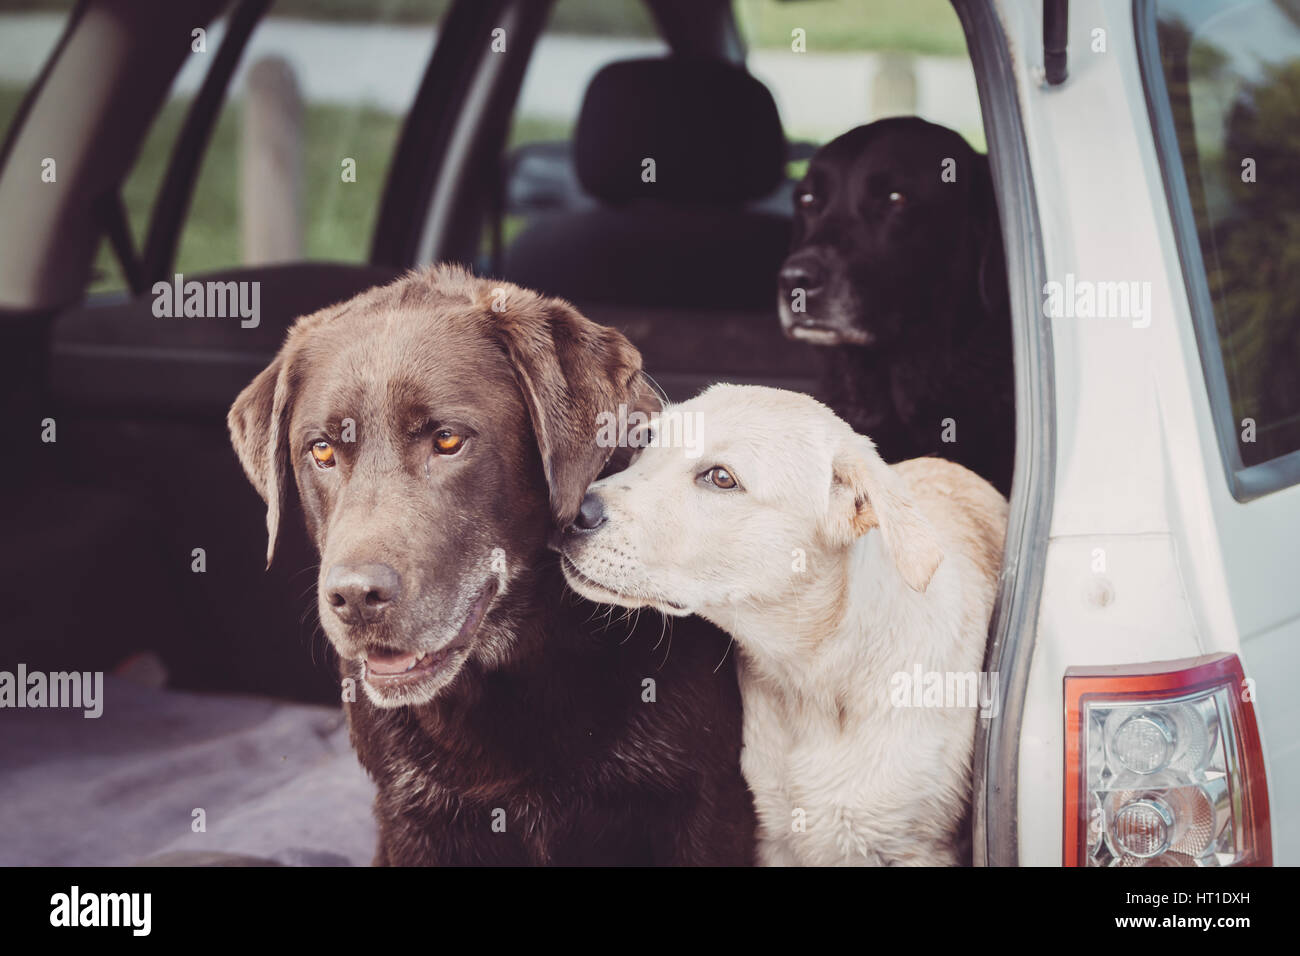 Three Labrador Retrievers sit in the back of a car while the white puppy shows affection towards one of the adult - Stock Image